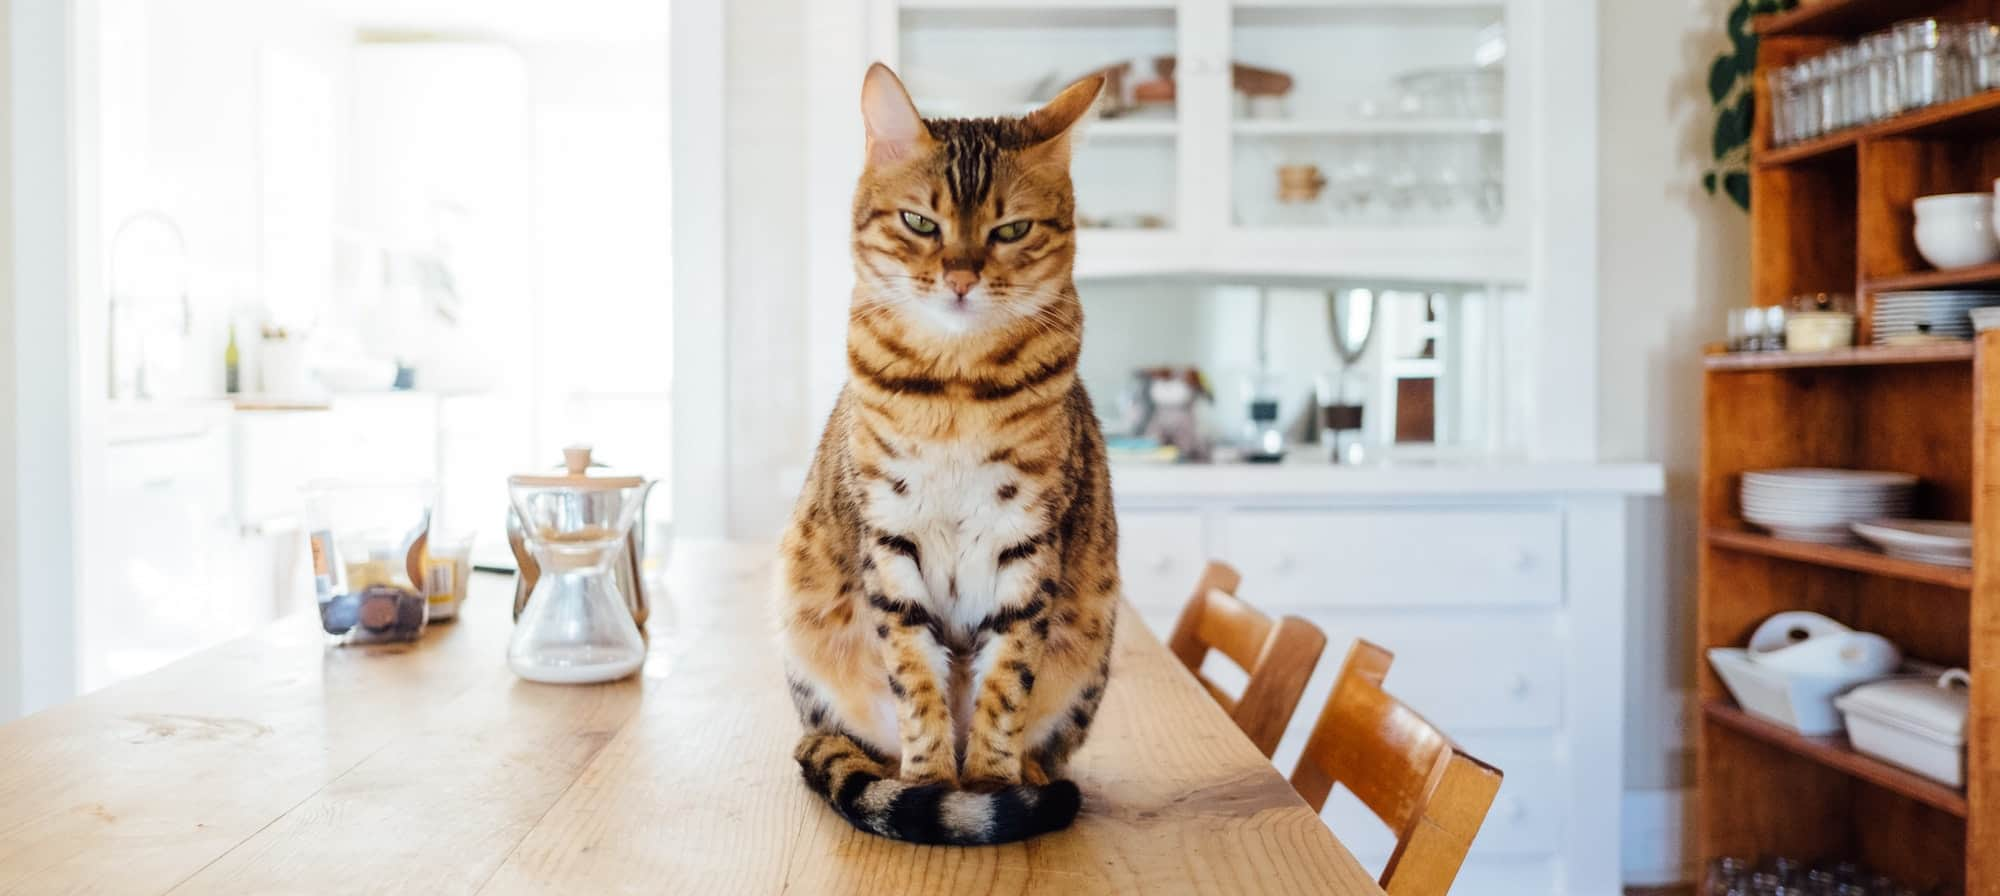 Cat sitting on a kitchen table